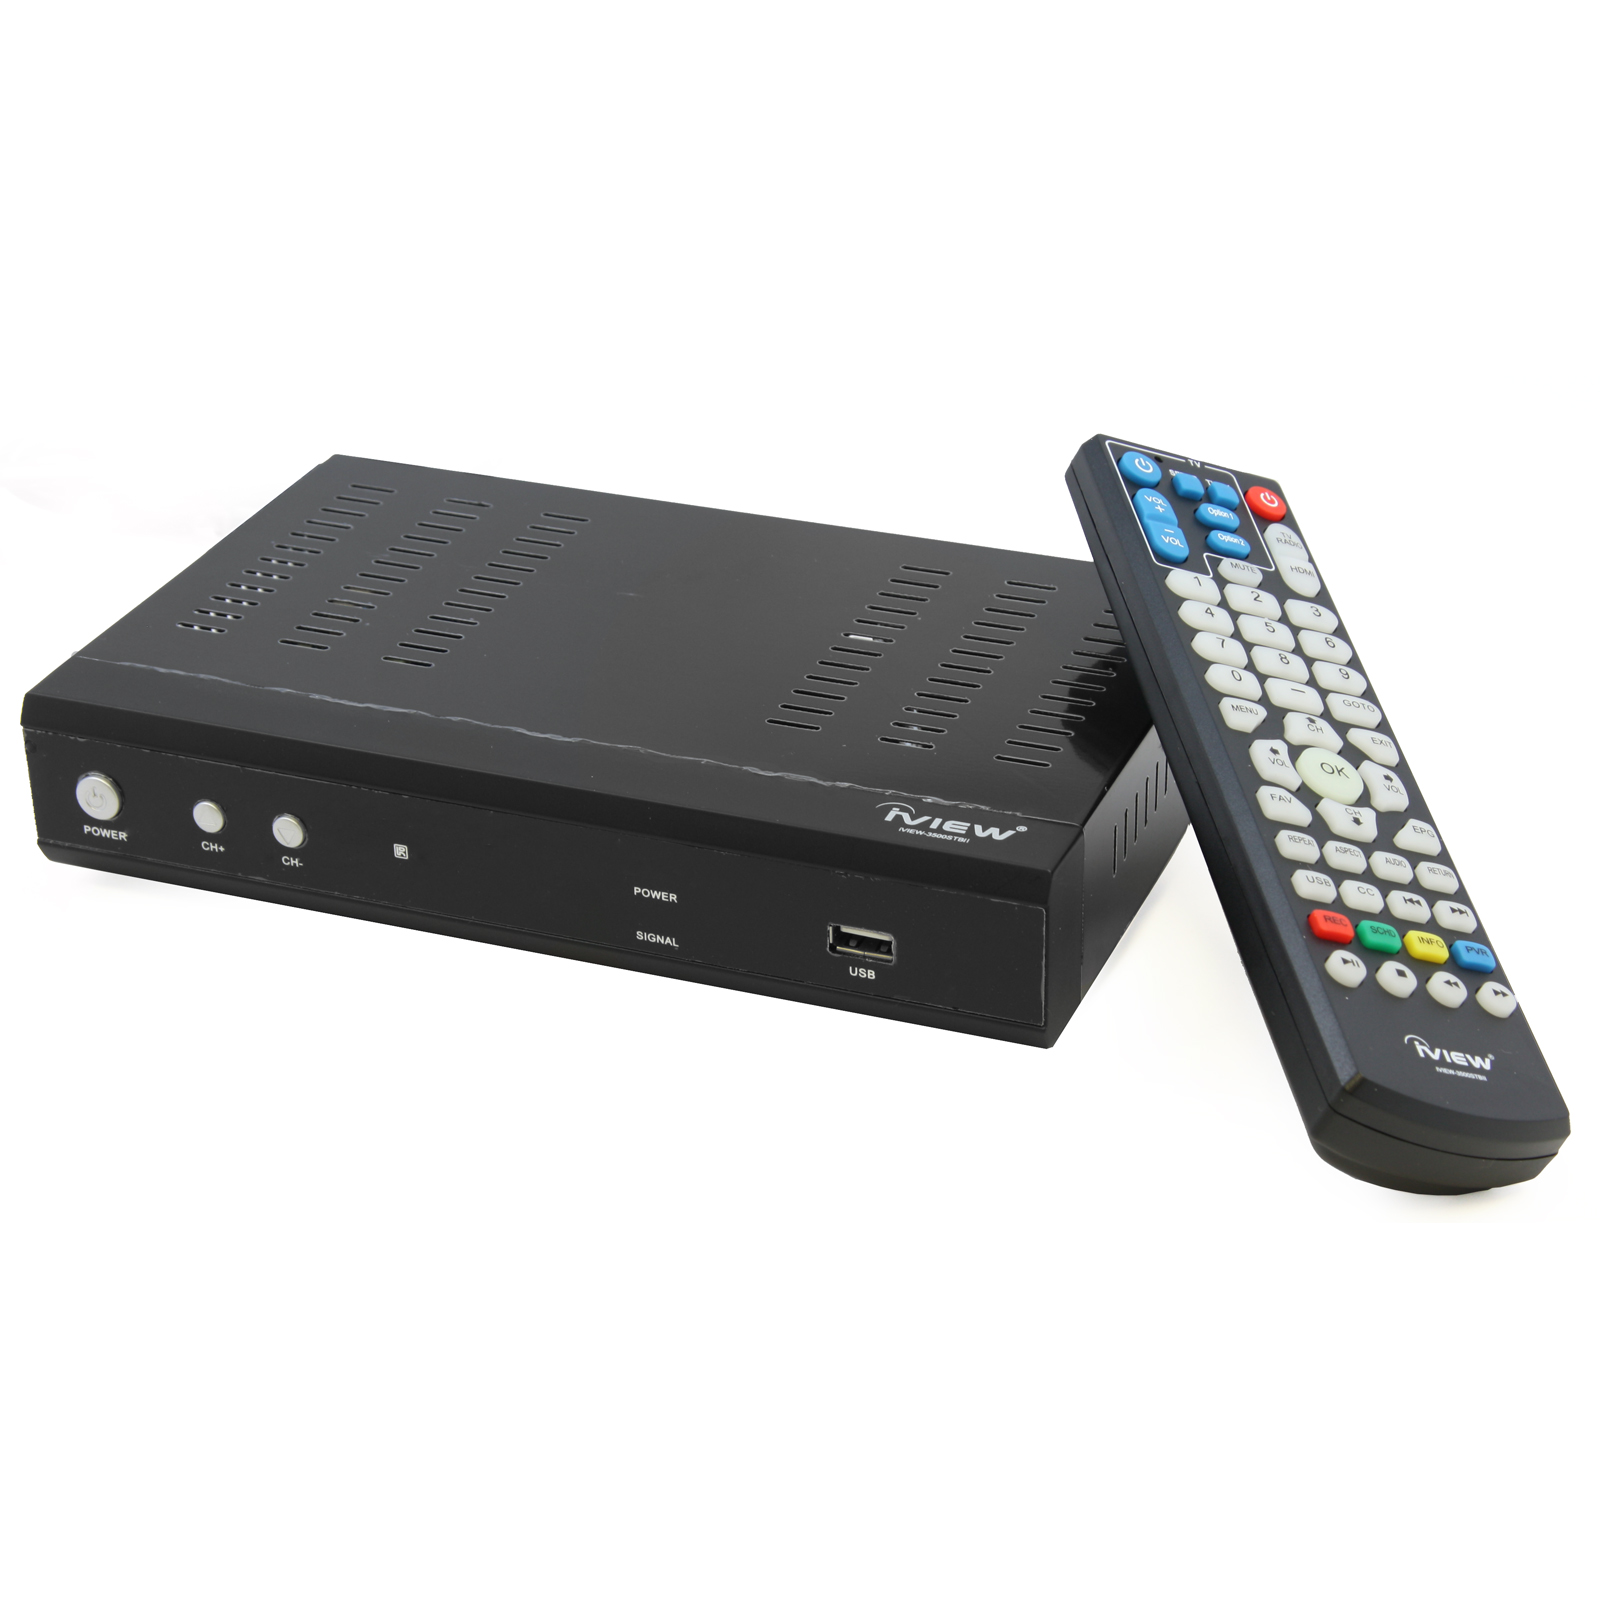 Iview 3500STBII v2 Converter Box Drivers PC